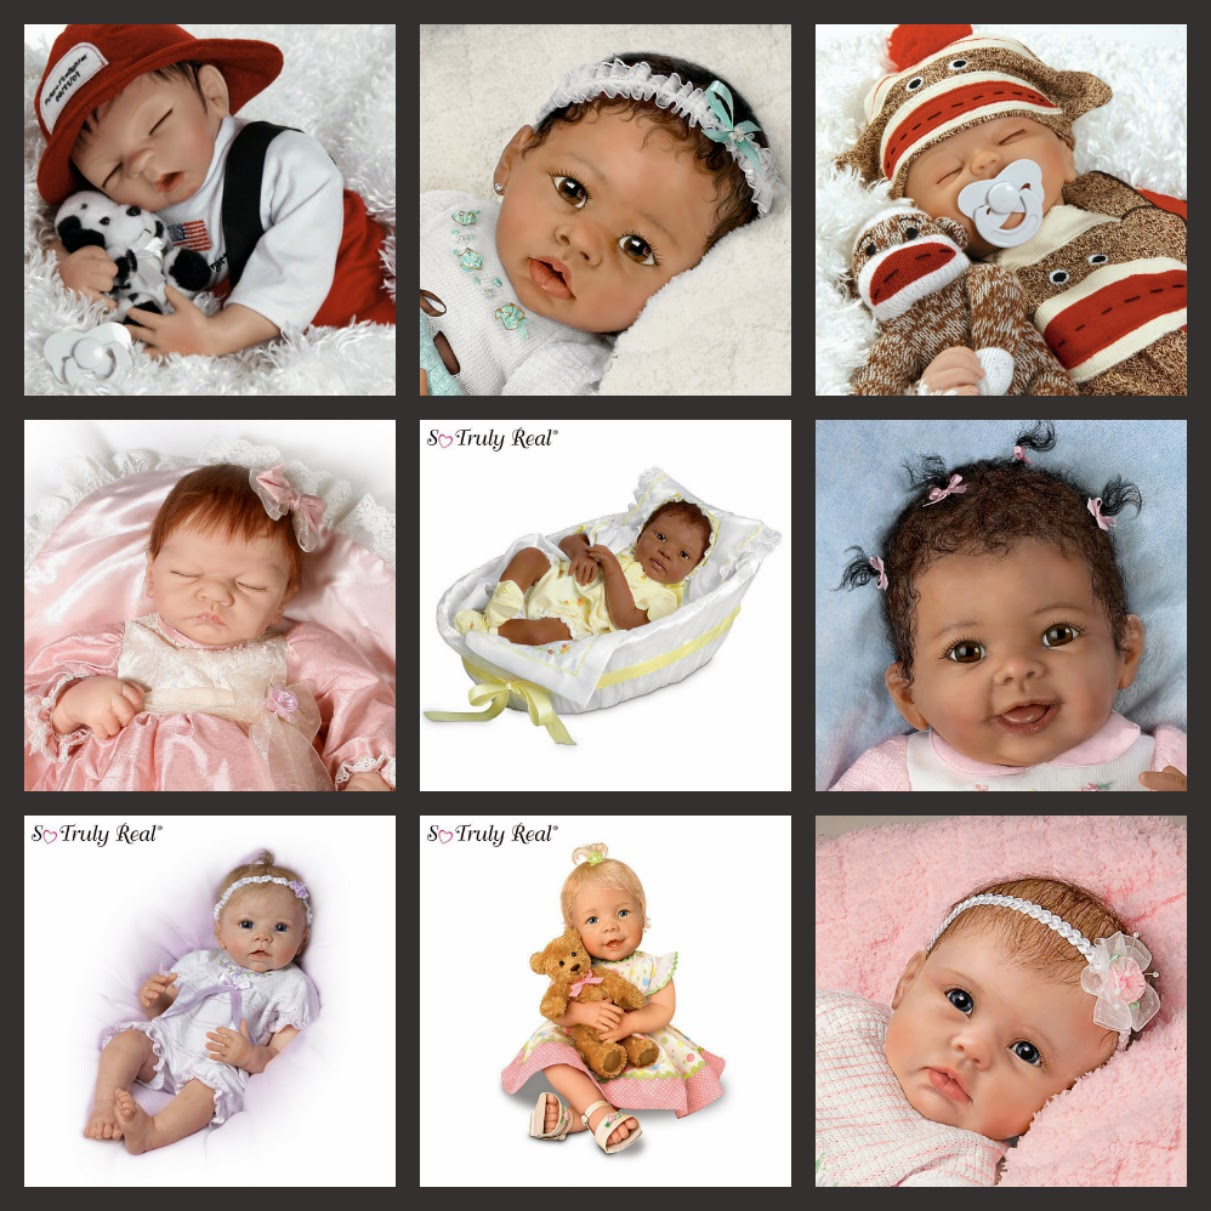 Realistic Baby Dolls as hobby - Collectible Dolls